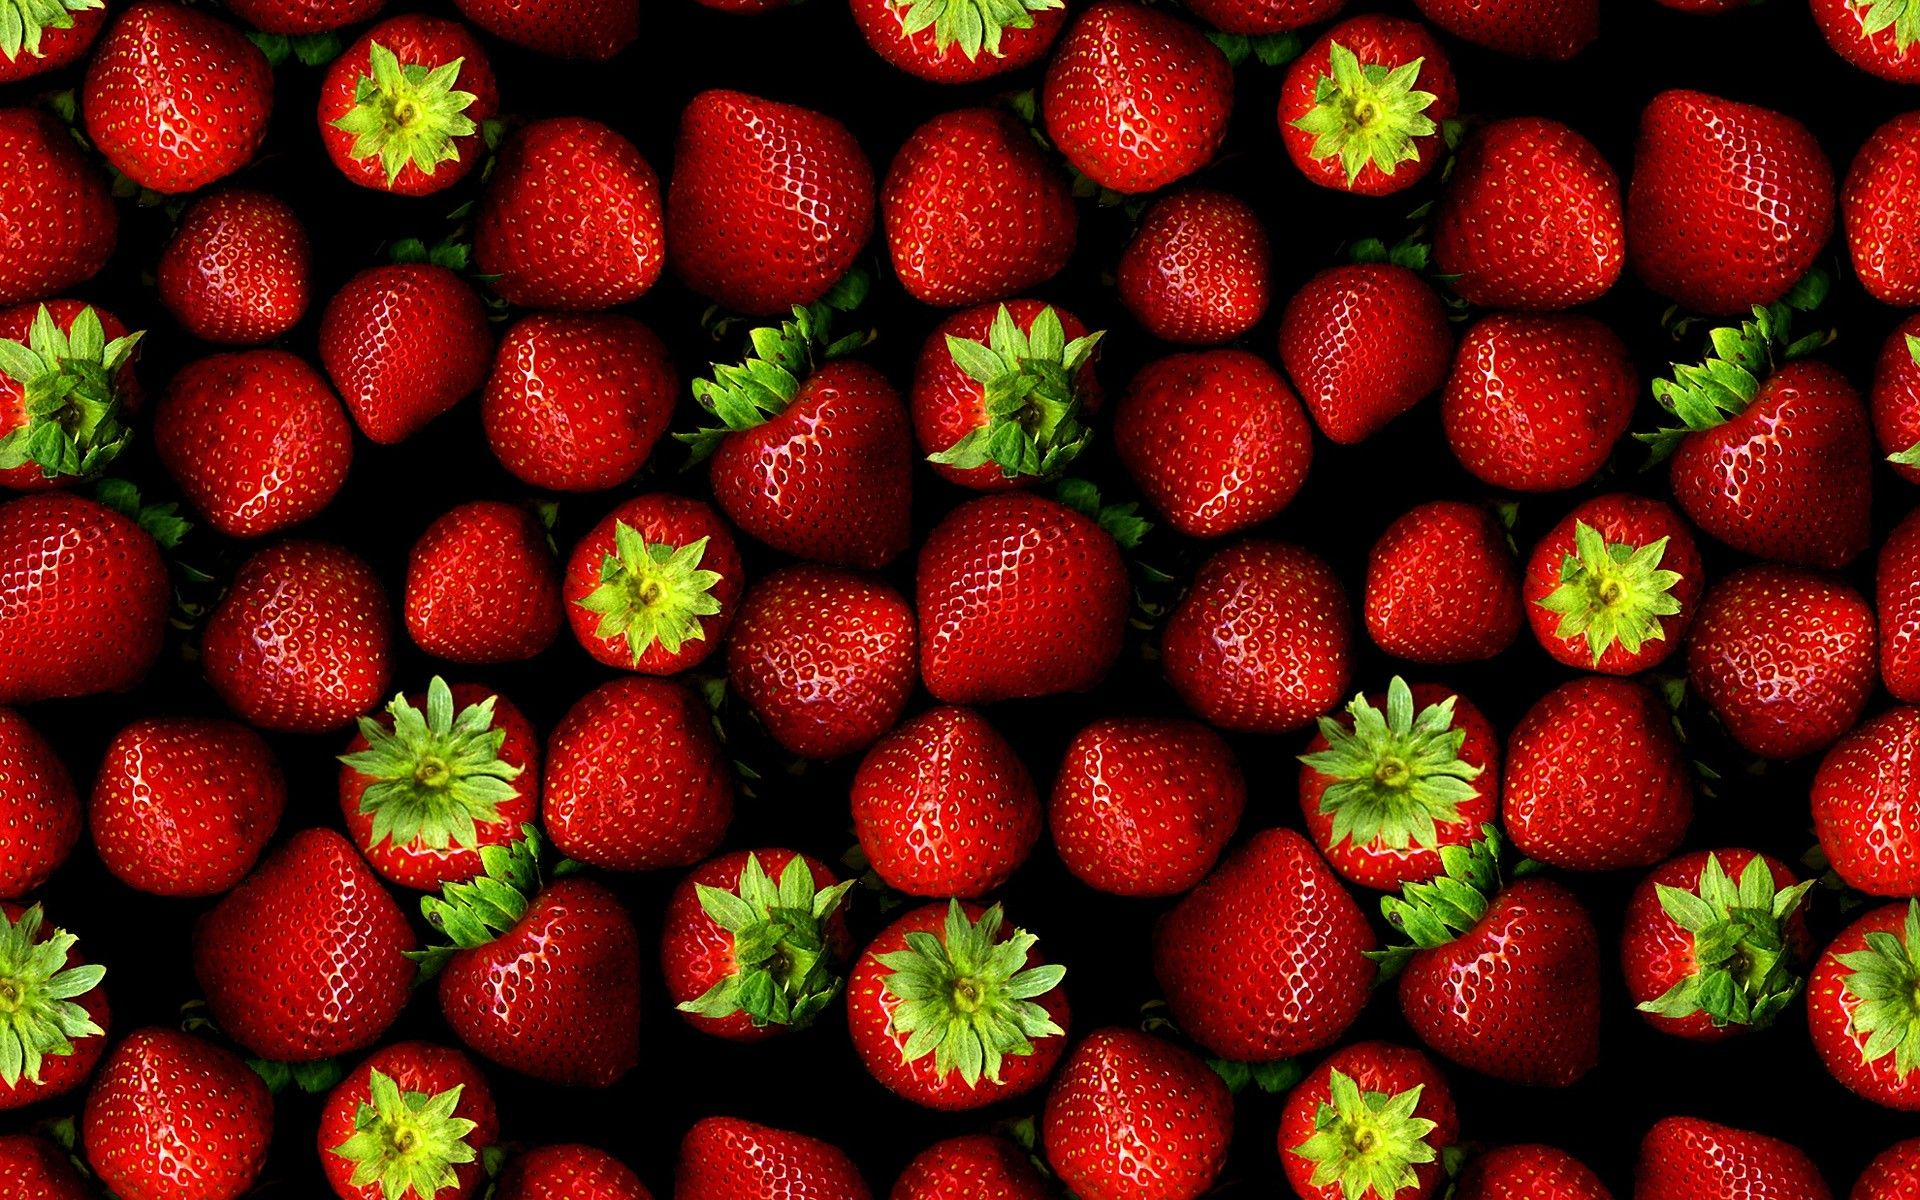 Fruits hd images - Fruit Hd Wallpapers Fruits Desktop Images Cool Wallpapers